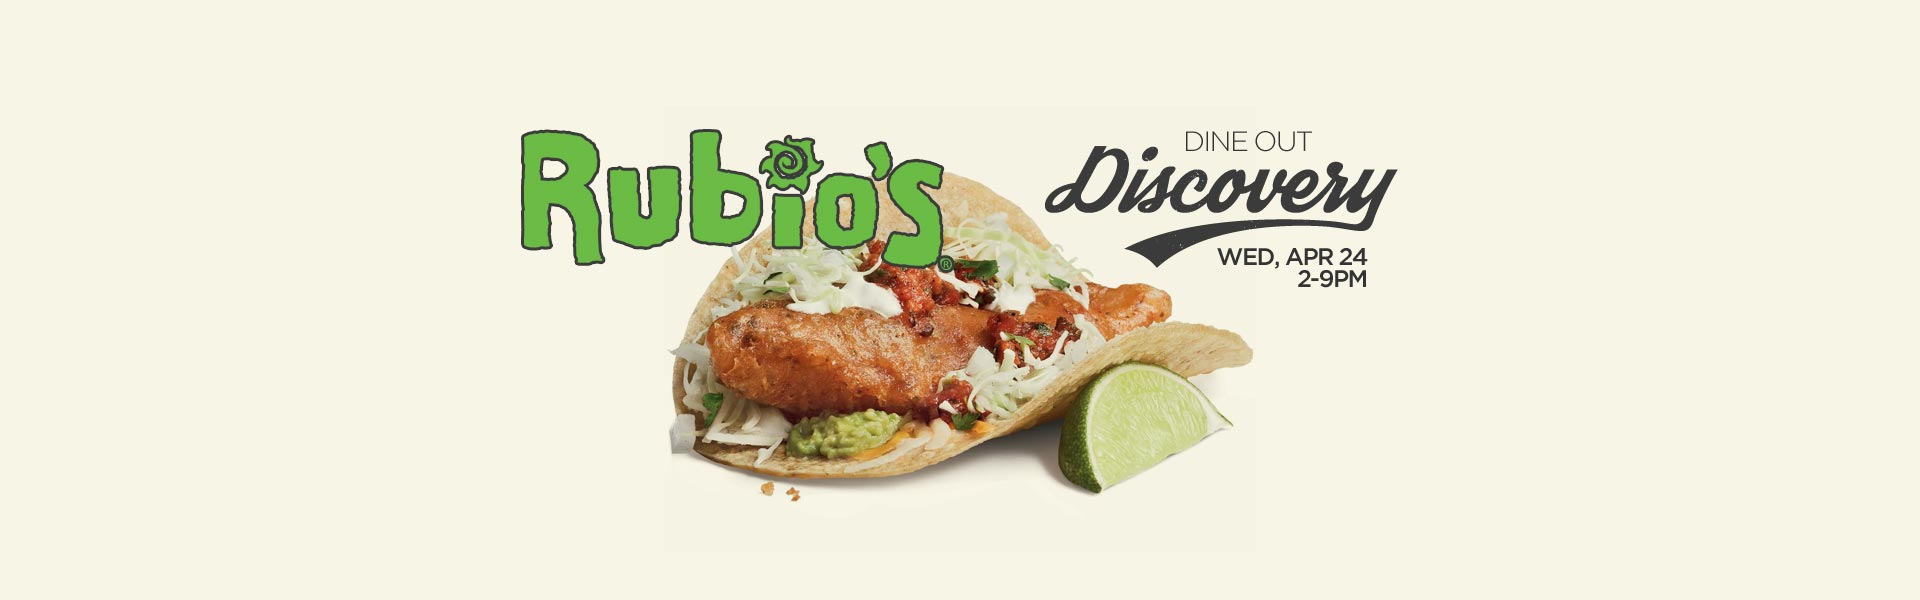 dine-out_rubios_20190424